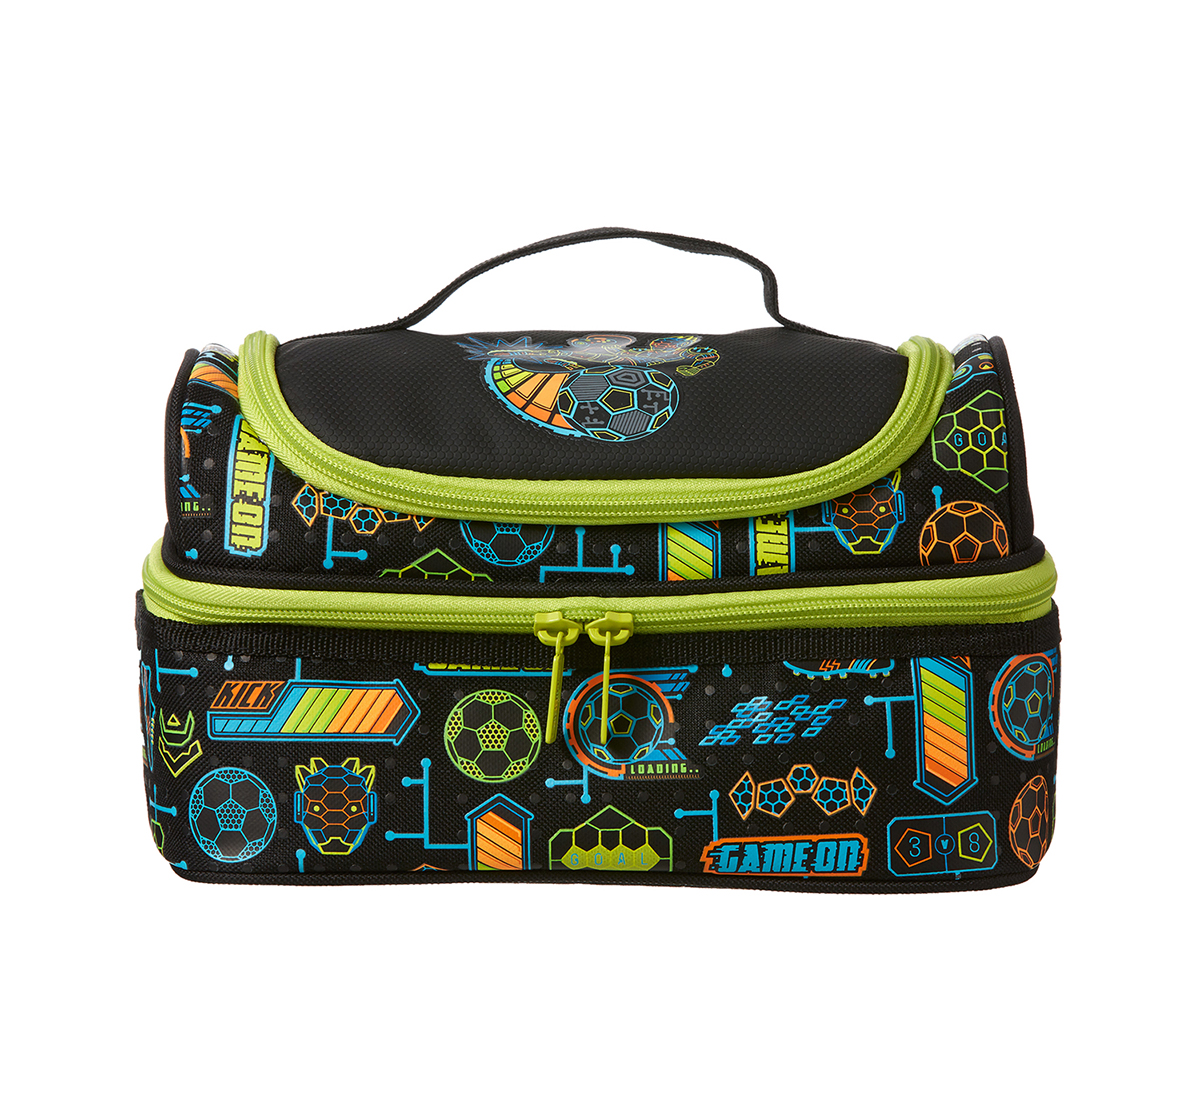 Smiggle | Smiggle Far Away Double Decker Lunchbox - Football Print Bags for Kids age 3Y+ (Black)